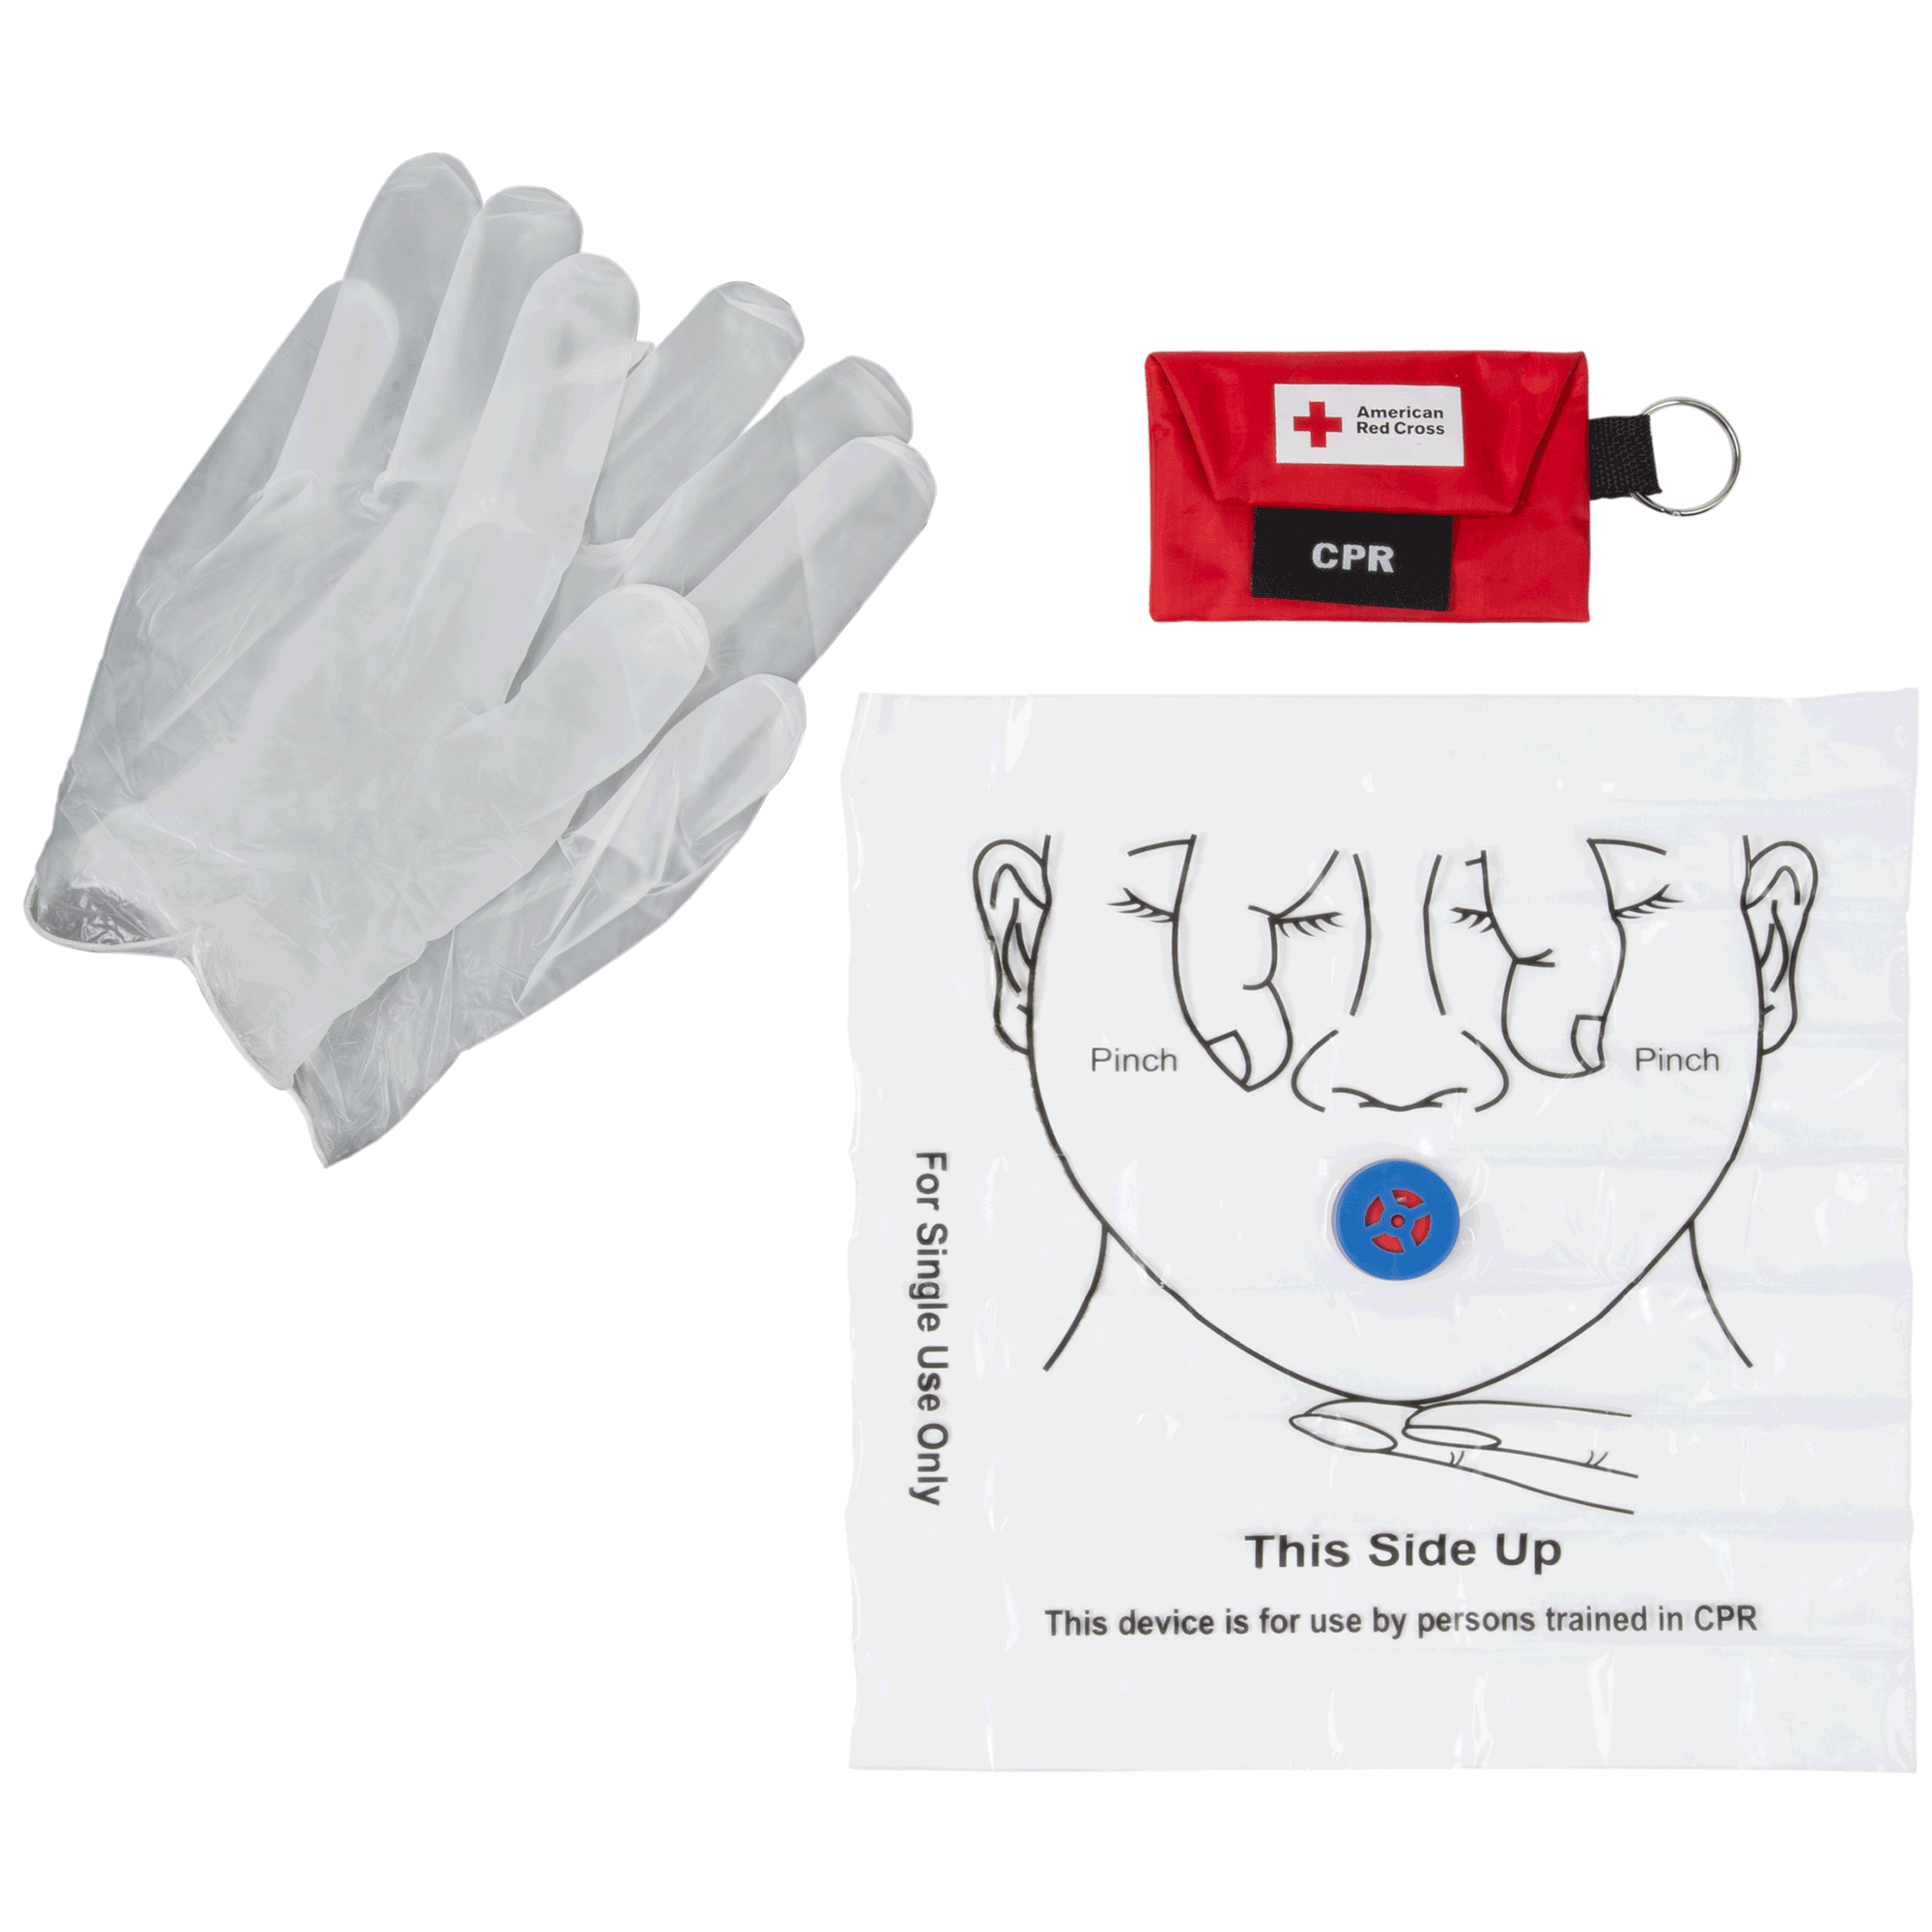 Cpr first aid medical training supplies red cross store cpr keychain with face shield and gloves 1betcityfo Image collections